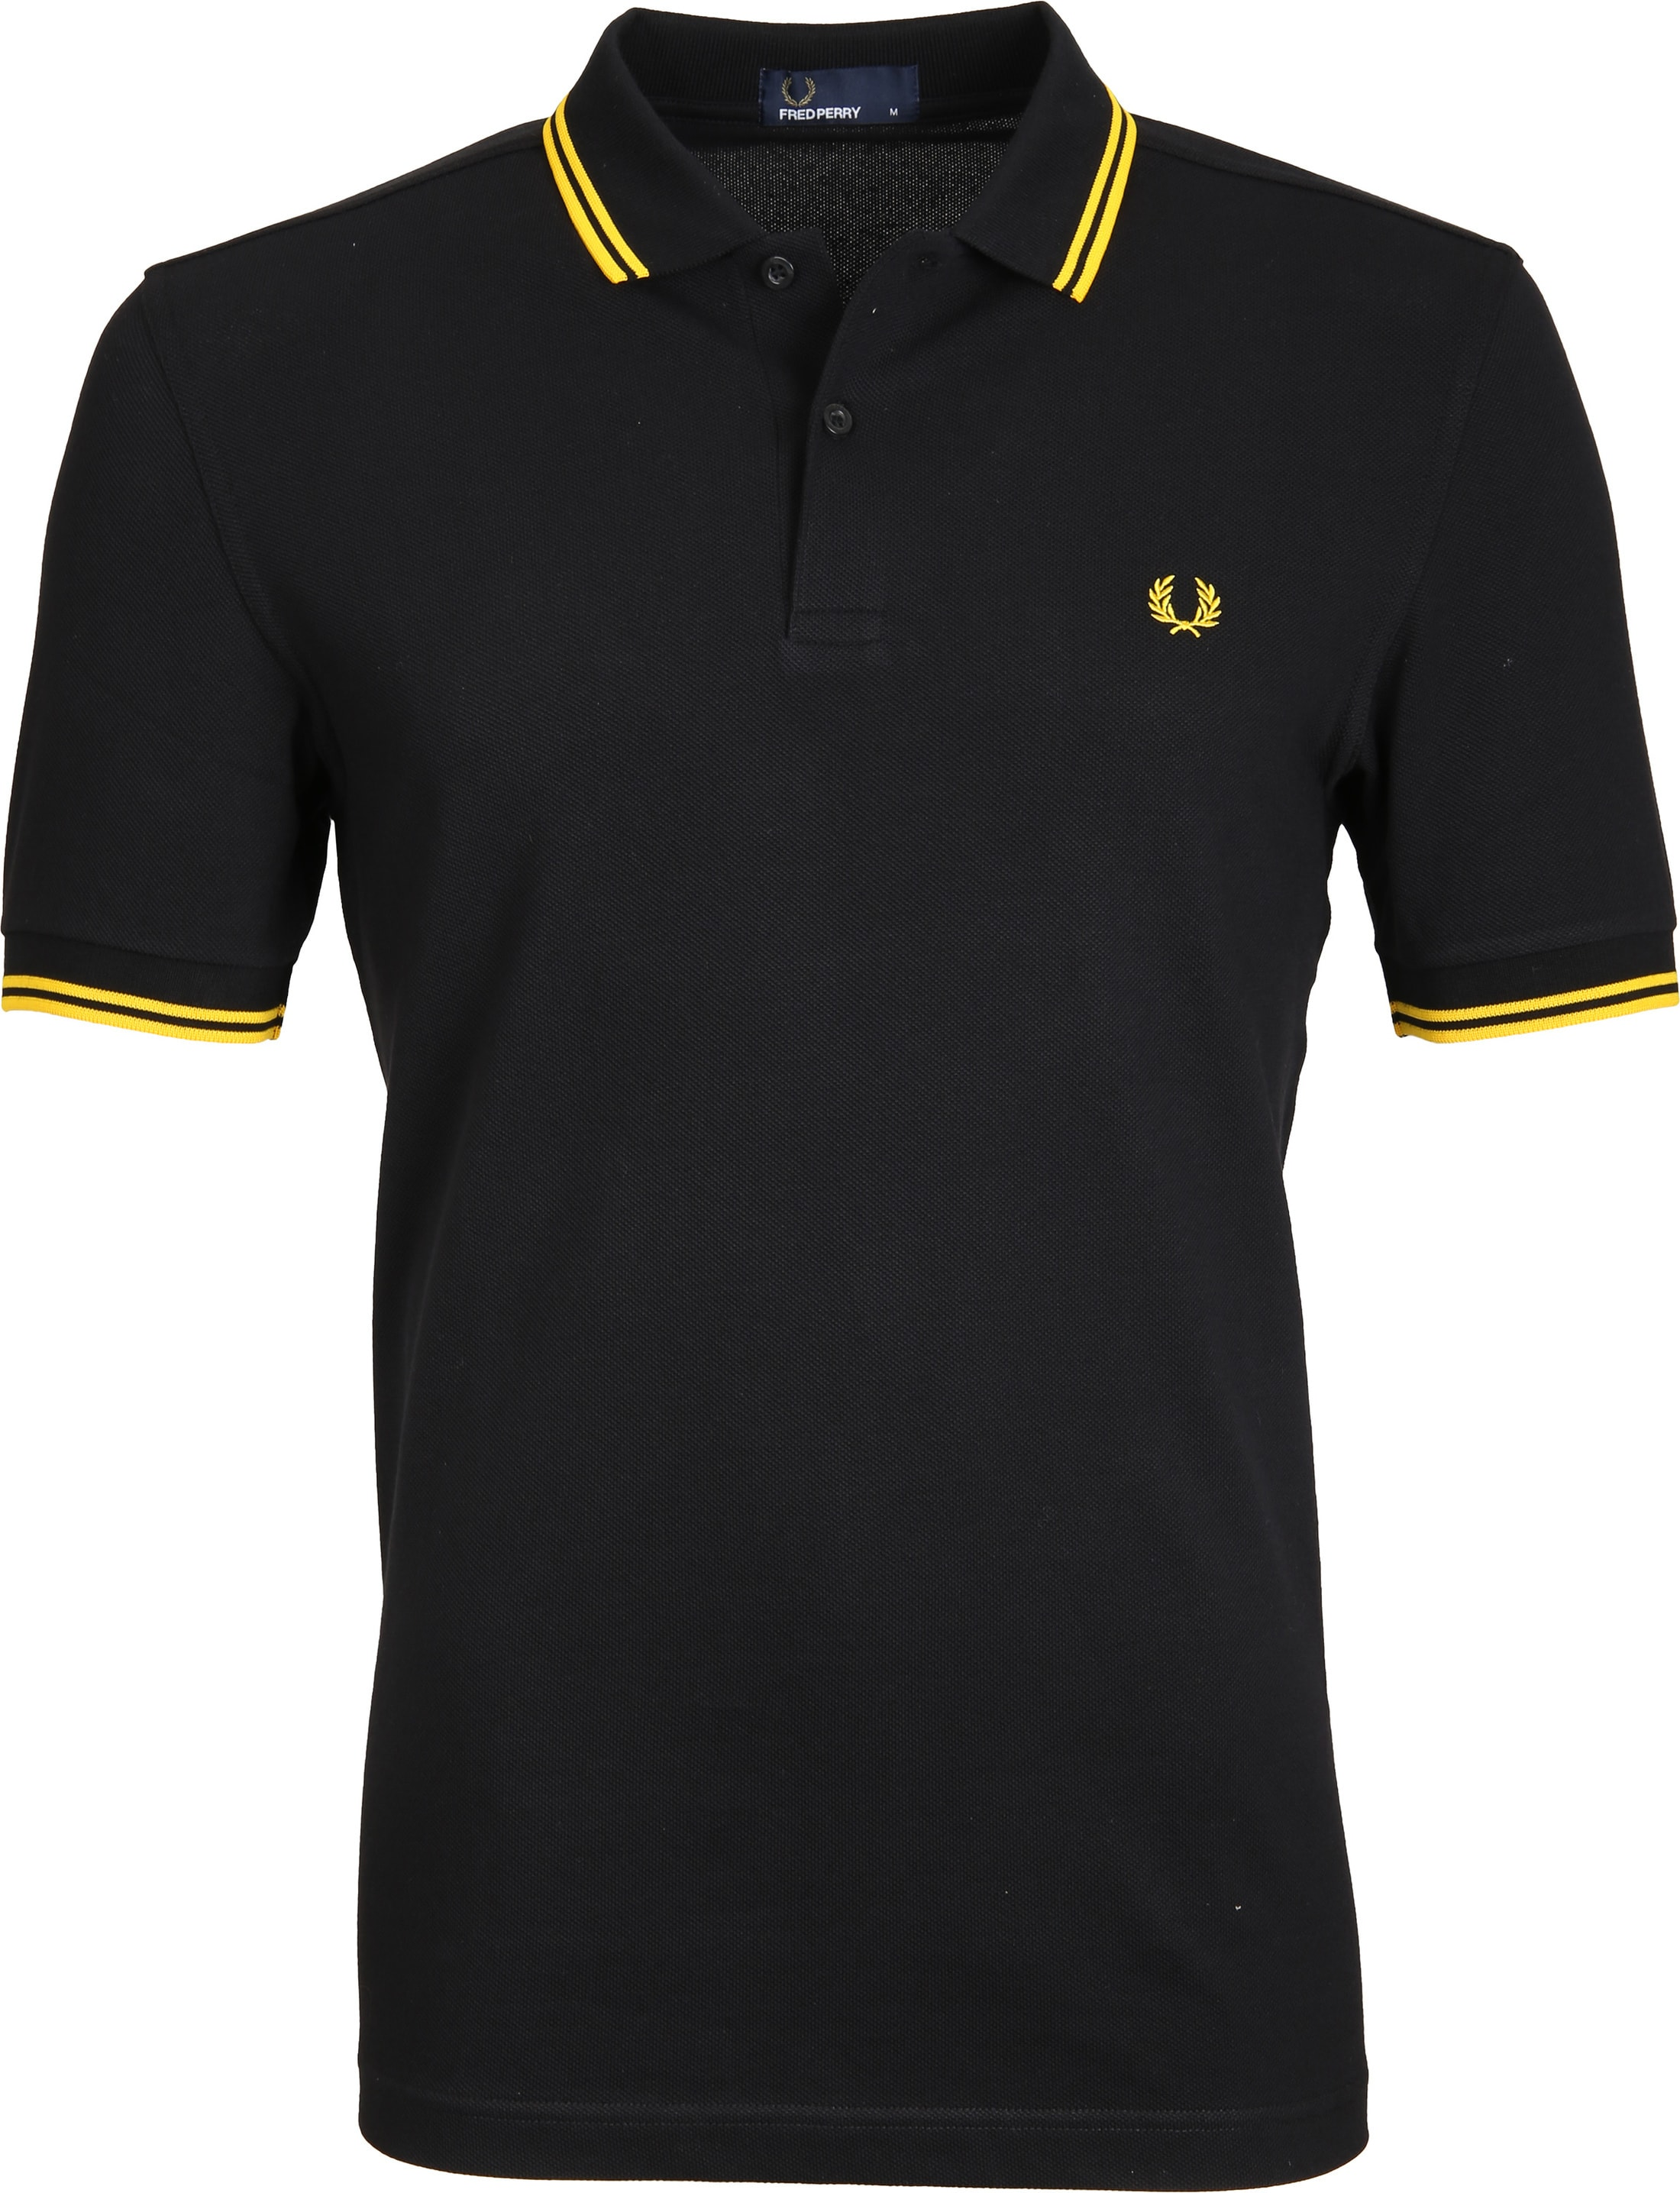 Fred Perry Polo Black Yellow Tip foto 0